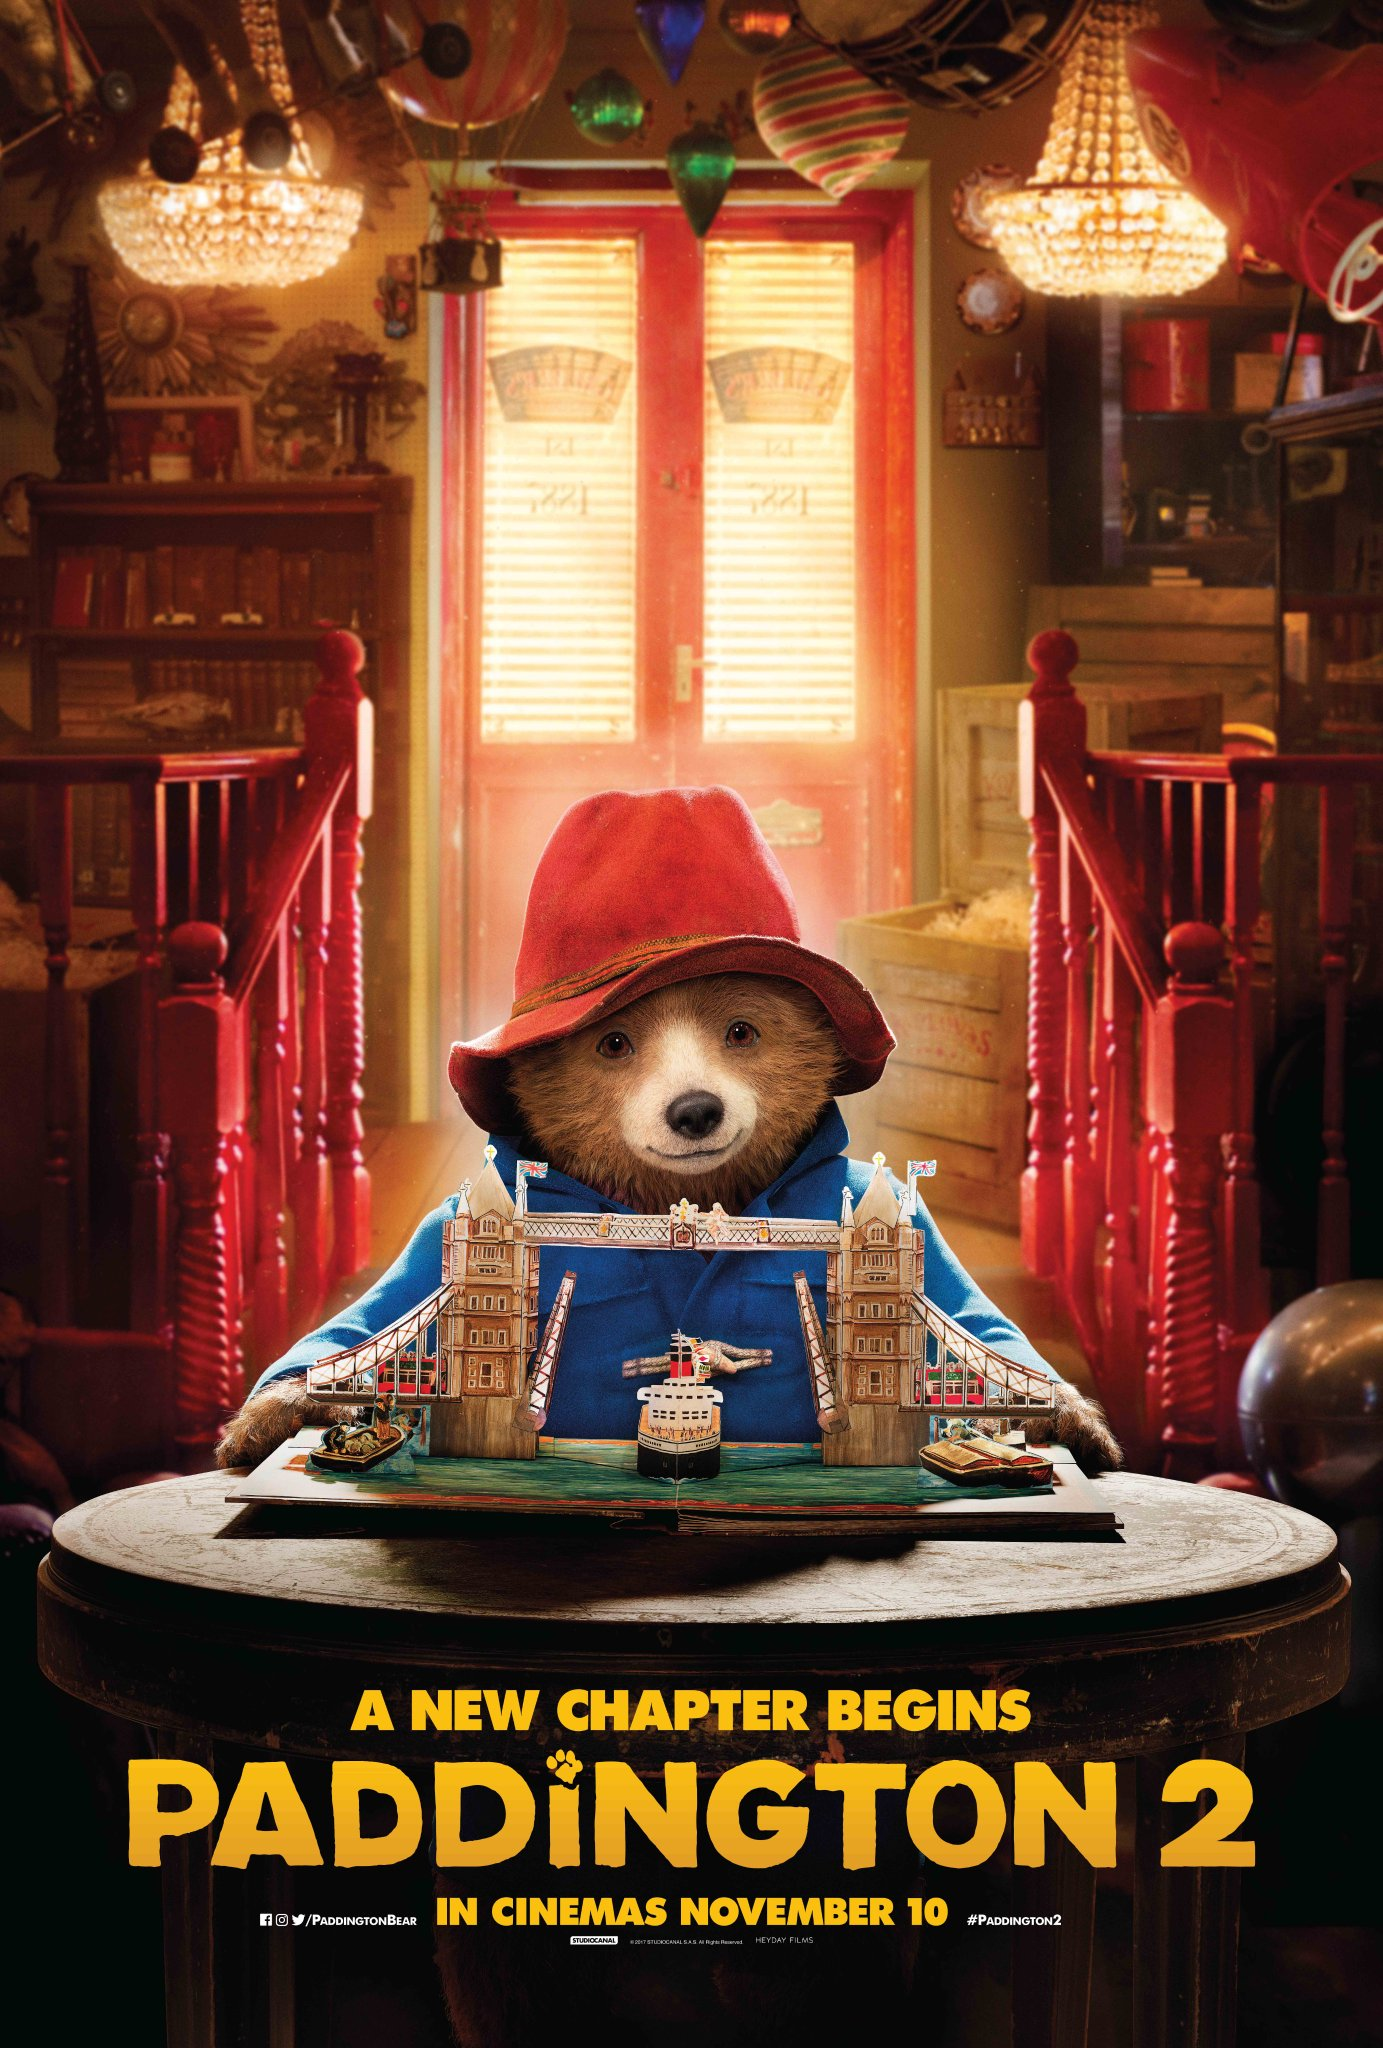 Paddington 2 pop-up book movie